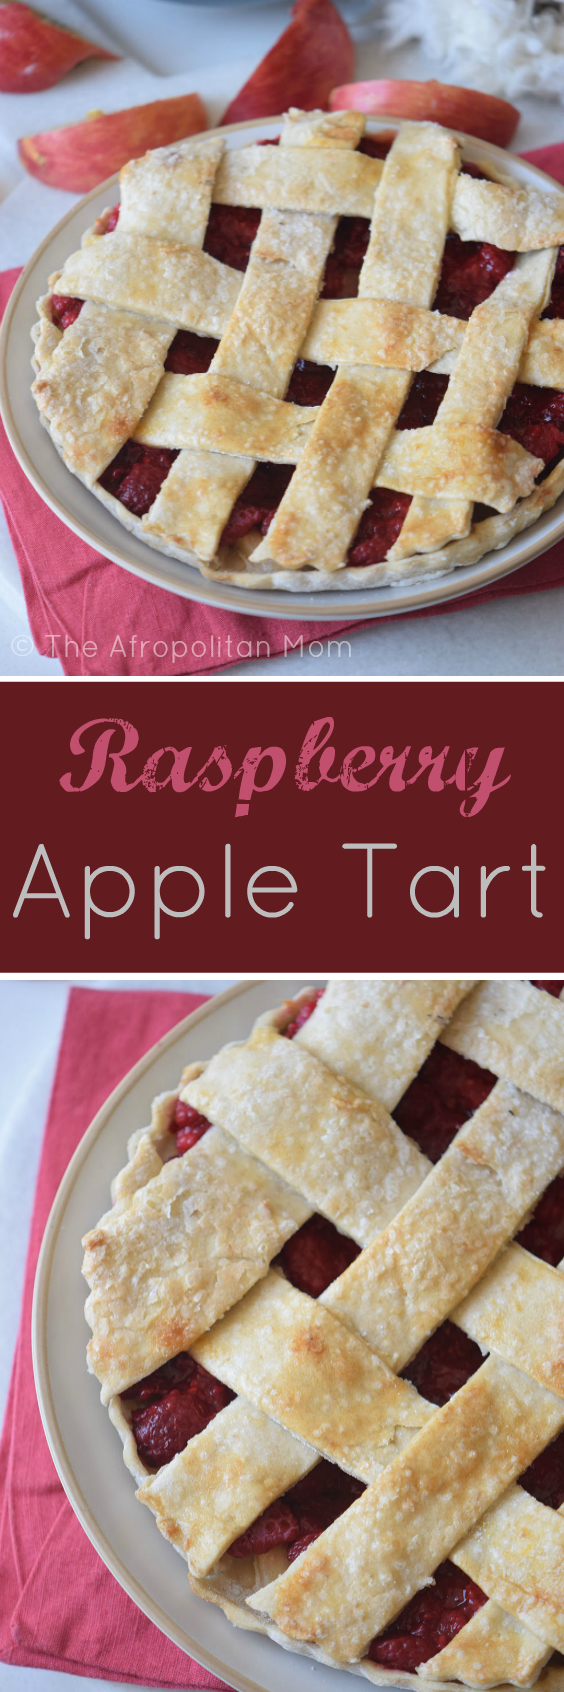 Raspberry Apple Tart has all the delicious fall flavors of a traditional apple pie + the citrus and freshness of a raspberry pie. They are sure to be a hit with everyone.